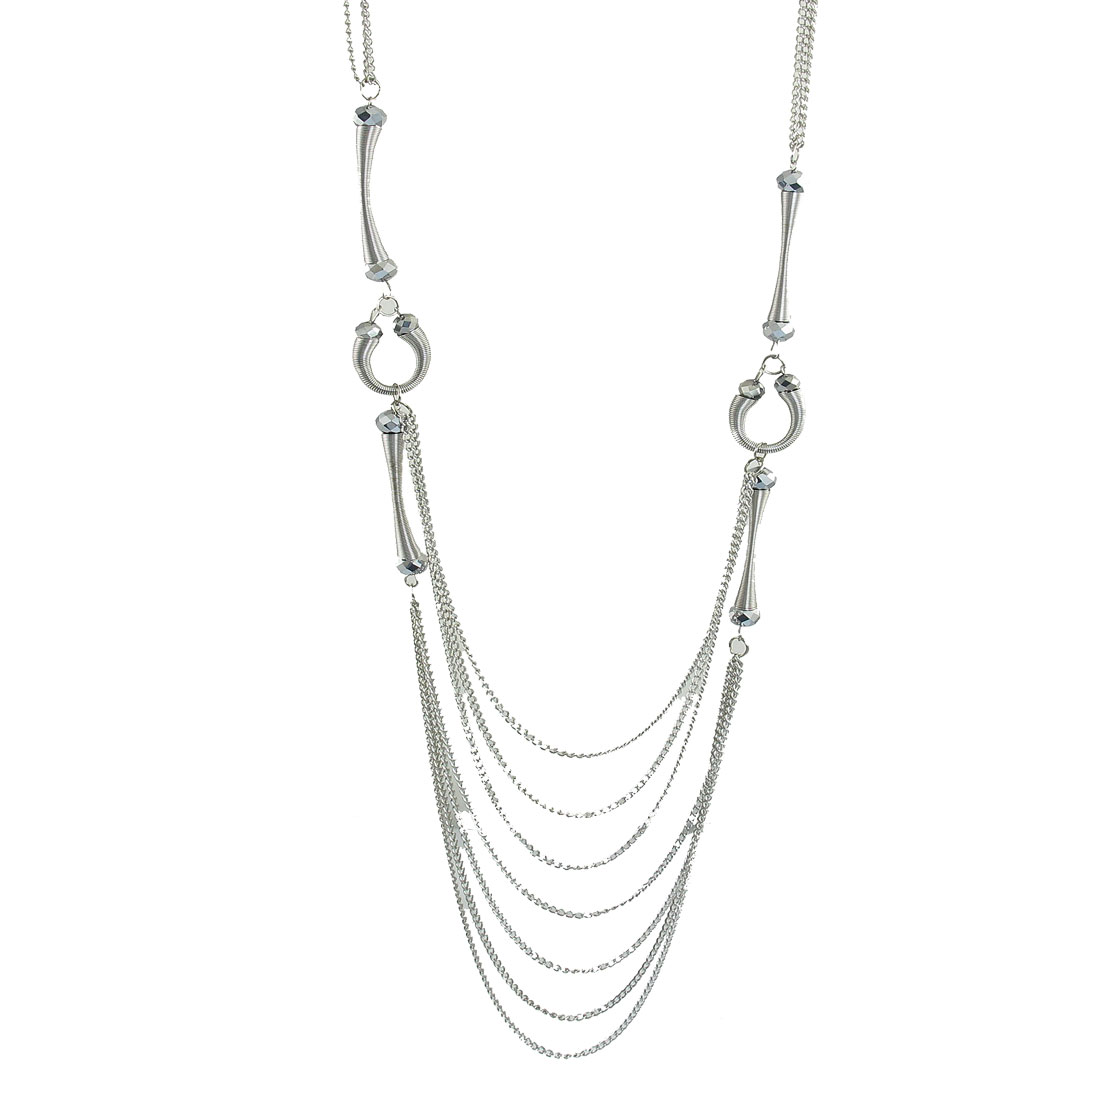 Silver Tone Sparkling Beads Detail Lobster Clasp Necklace for Women